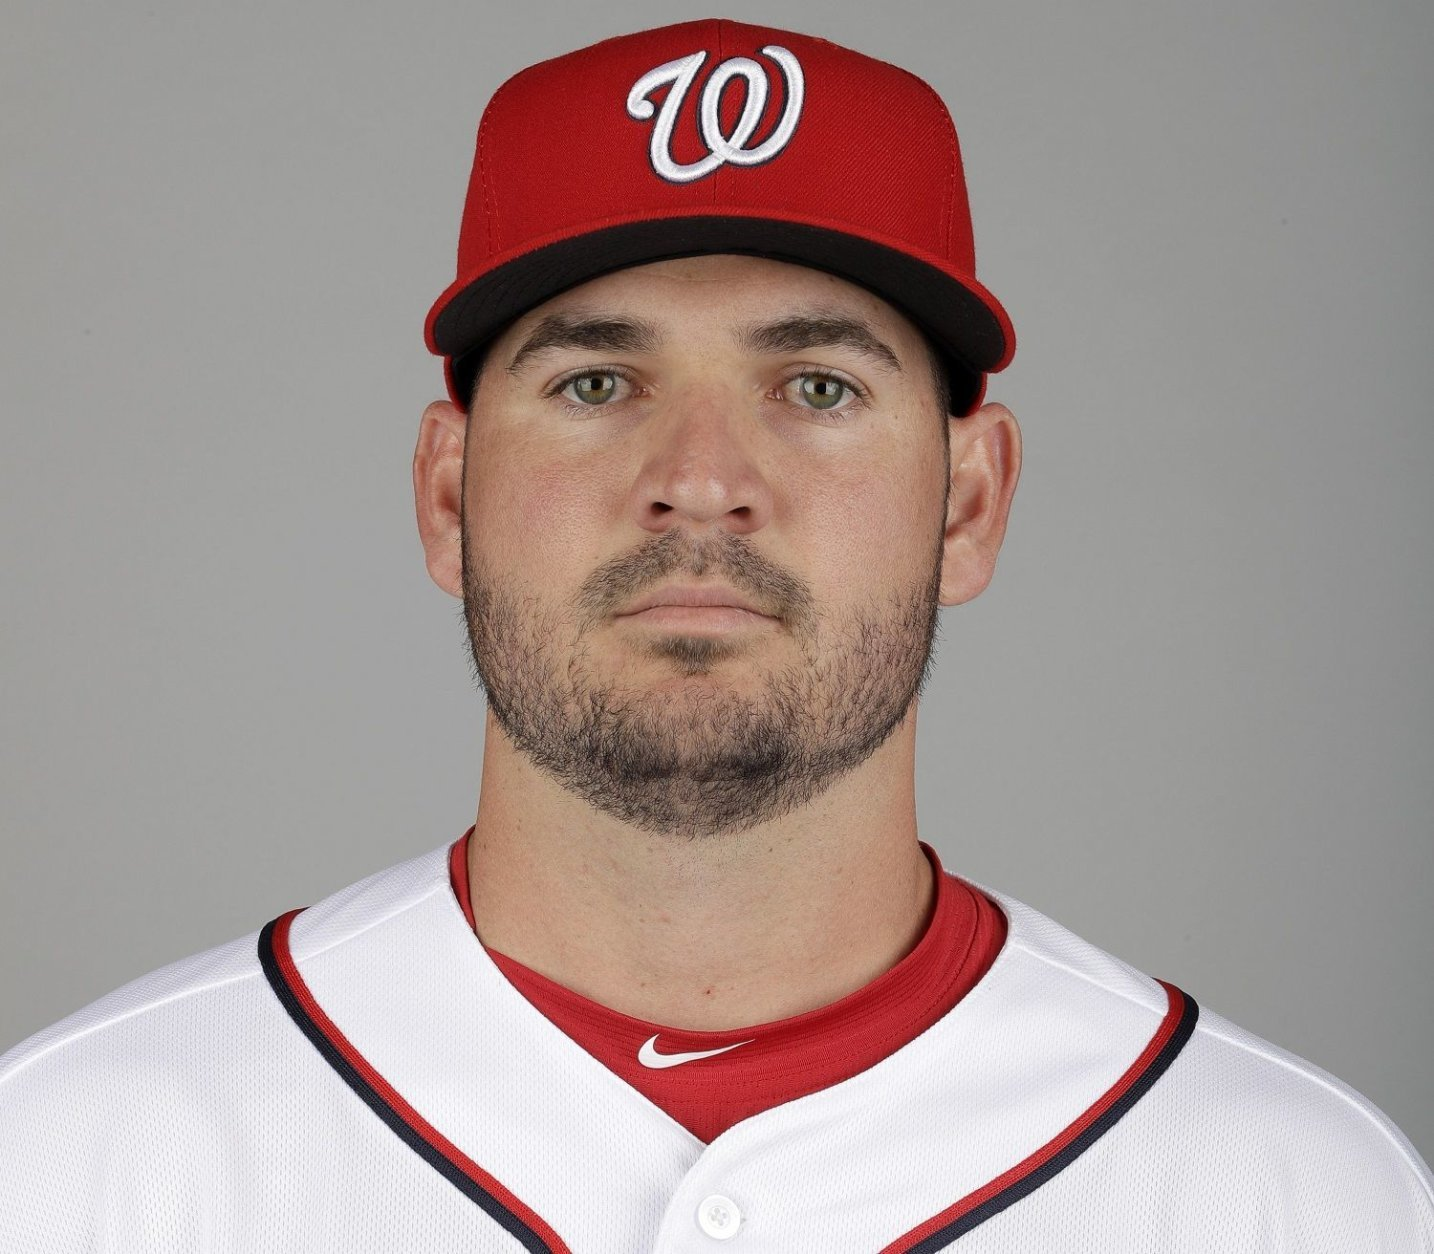 This is a 2019 photo of Jake Noll of the Washington Nationals baseball team. This image reflects the 2019 active roster as of Friday, Feb. 22, 2019, when this image was taken. (AP Photo/Jeff Roberson)